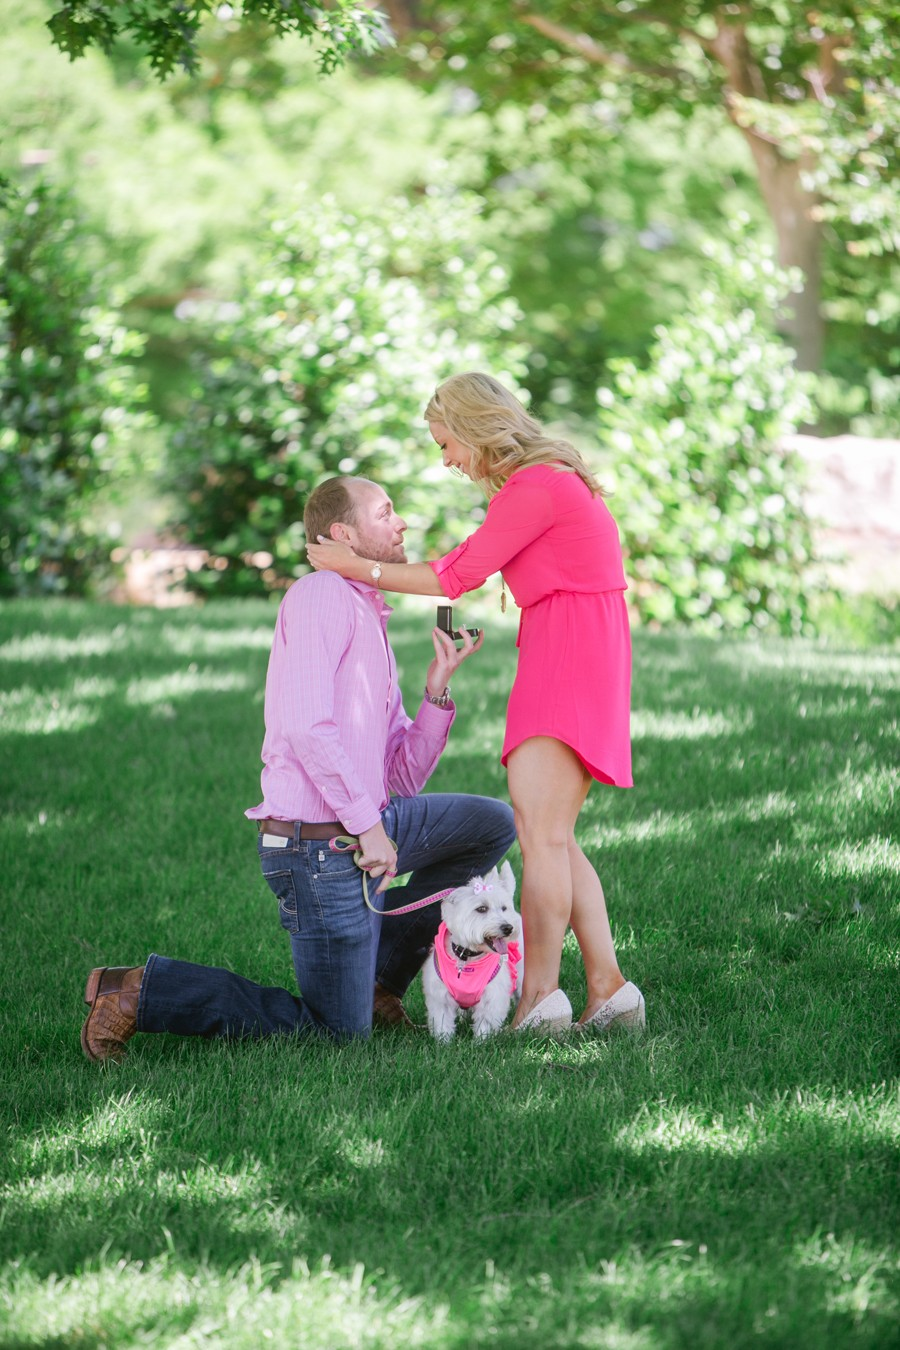 Image 7 of Jennifer and Drew's Dog Tag Marriage Proposal